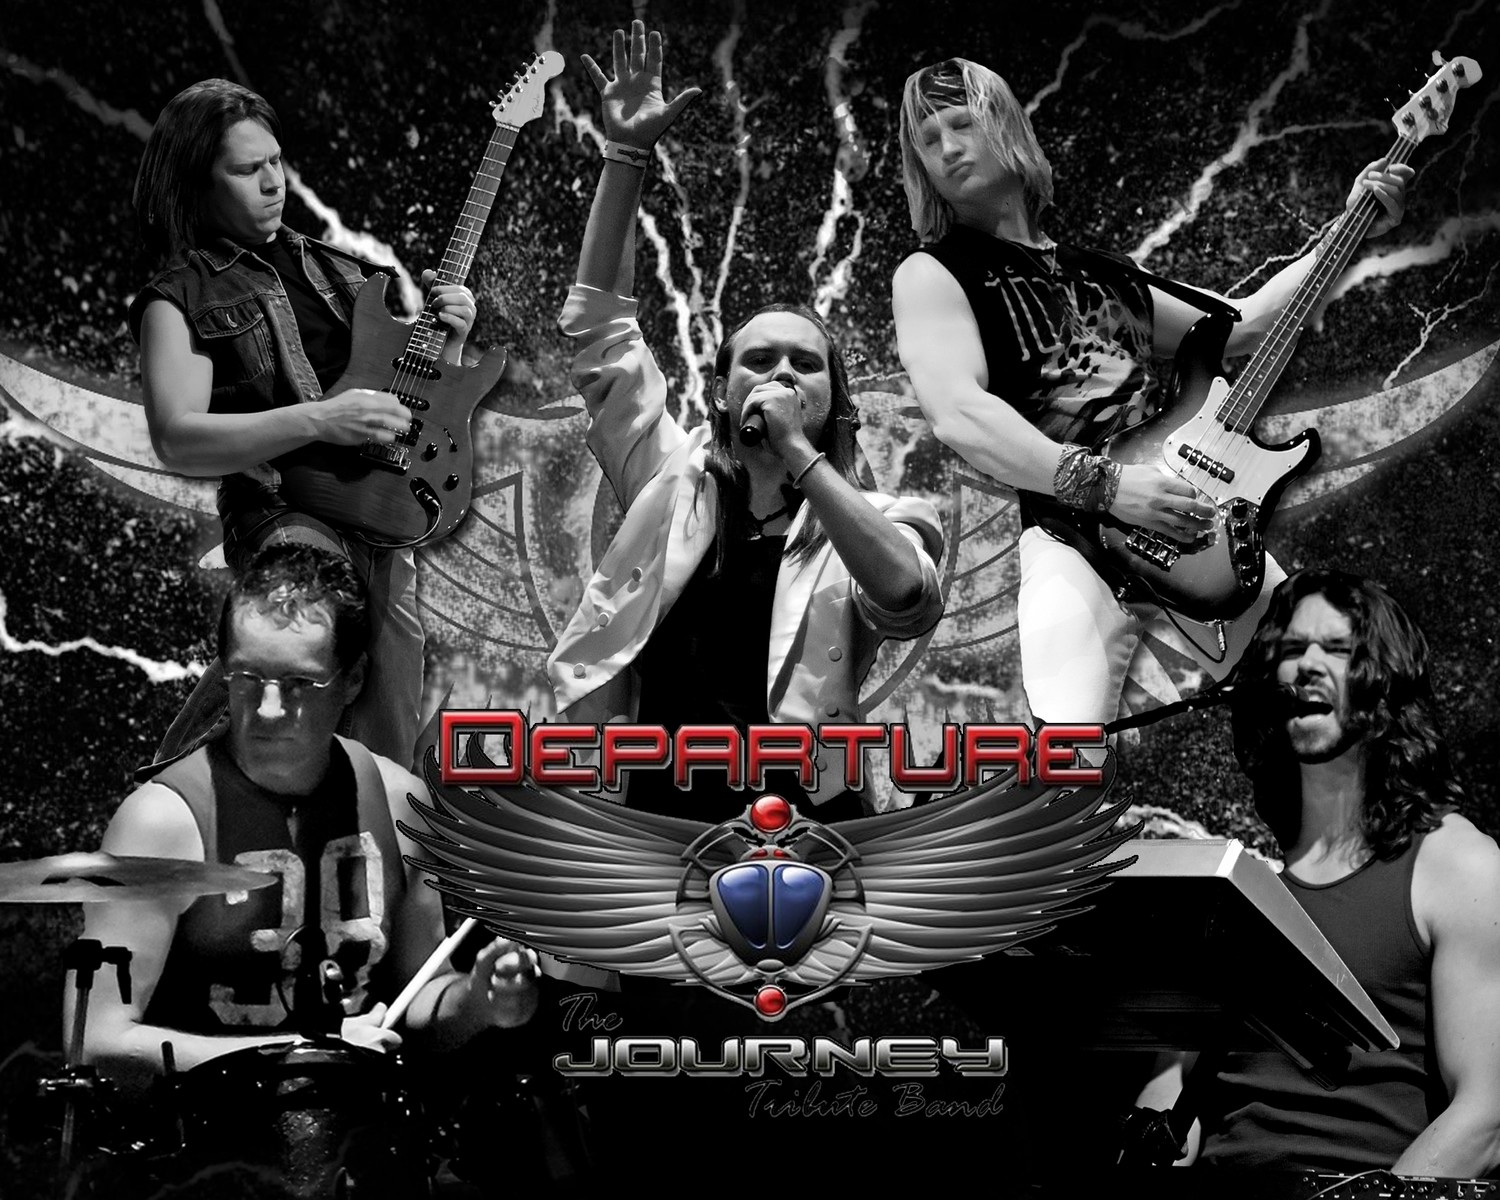 Departure (Journey Tribute Band) May 29th 9:00pm